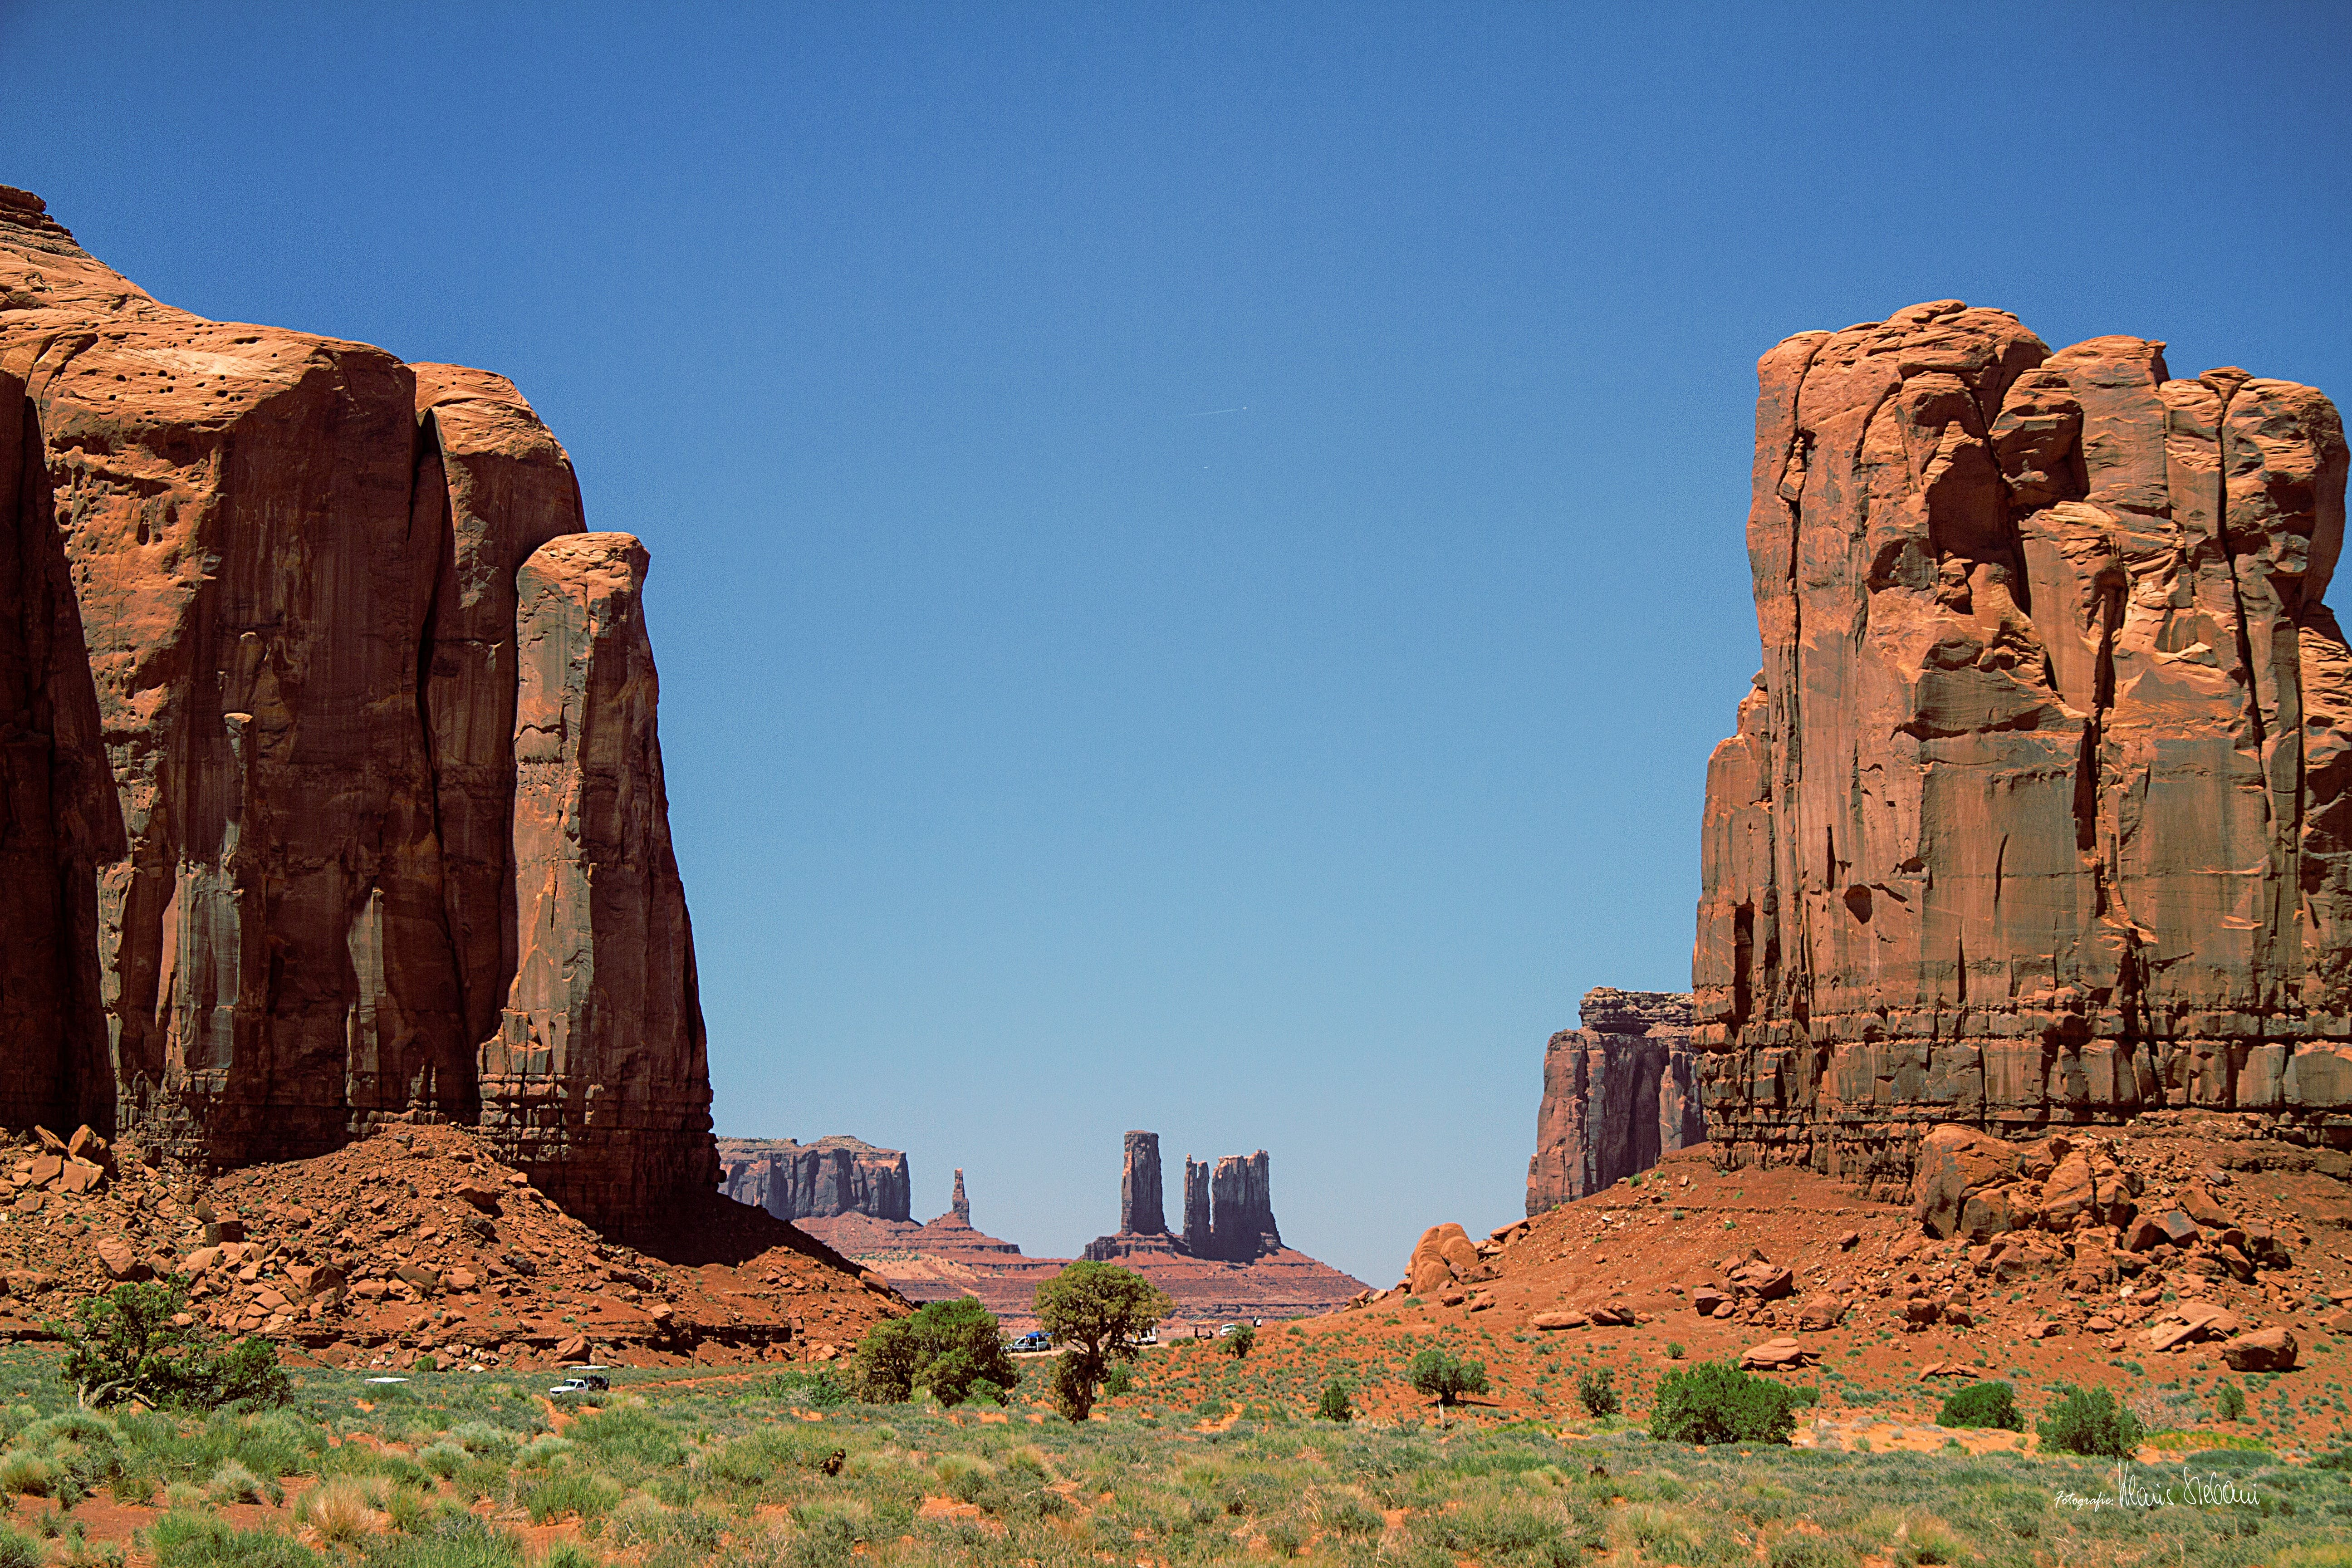 Two Rock Formations on Desert